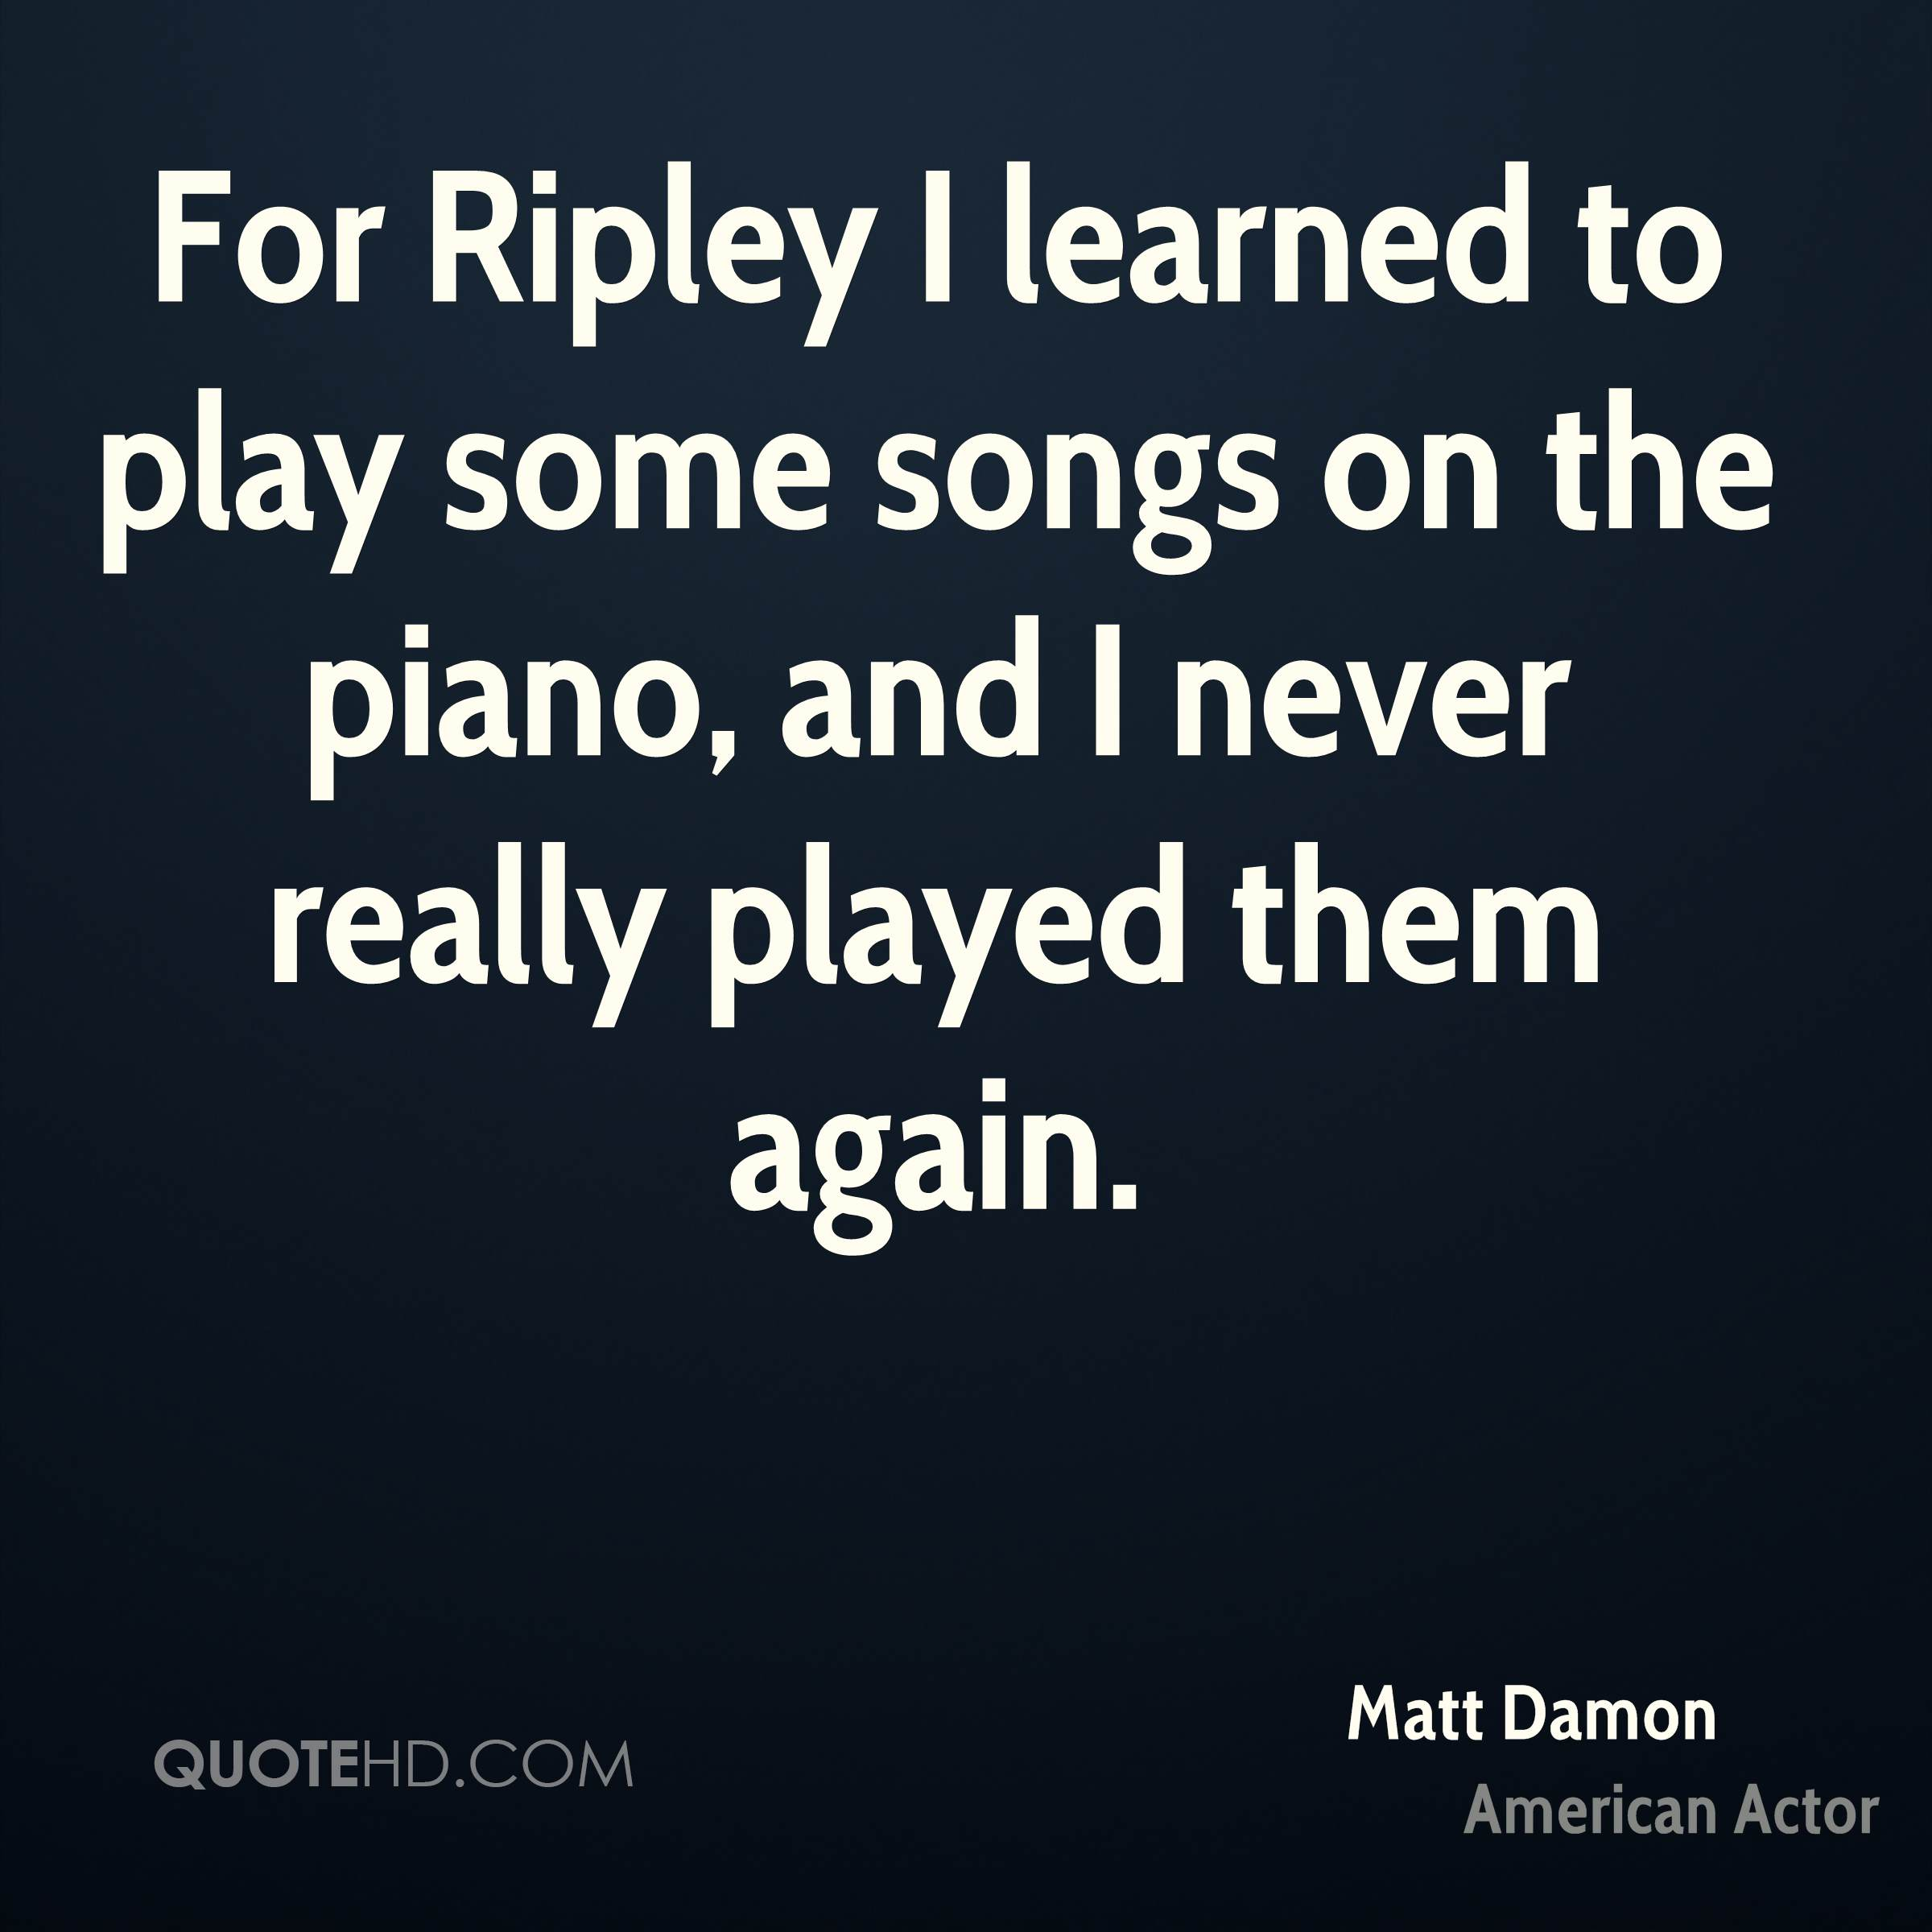 For Ripley I learned to play some songs on the piano, and I never really played them again.